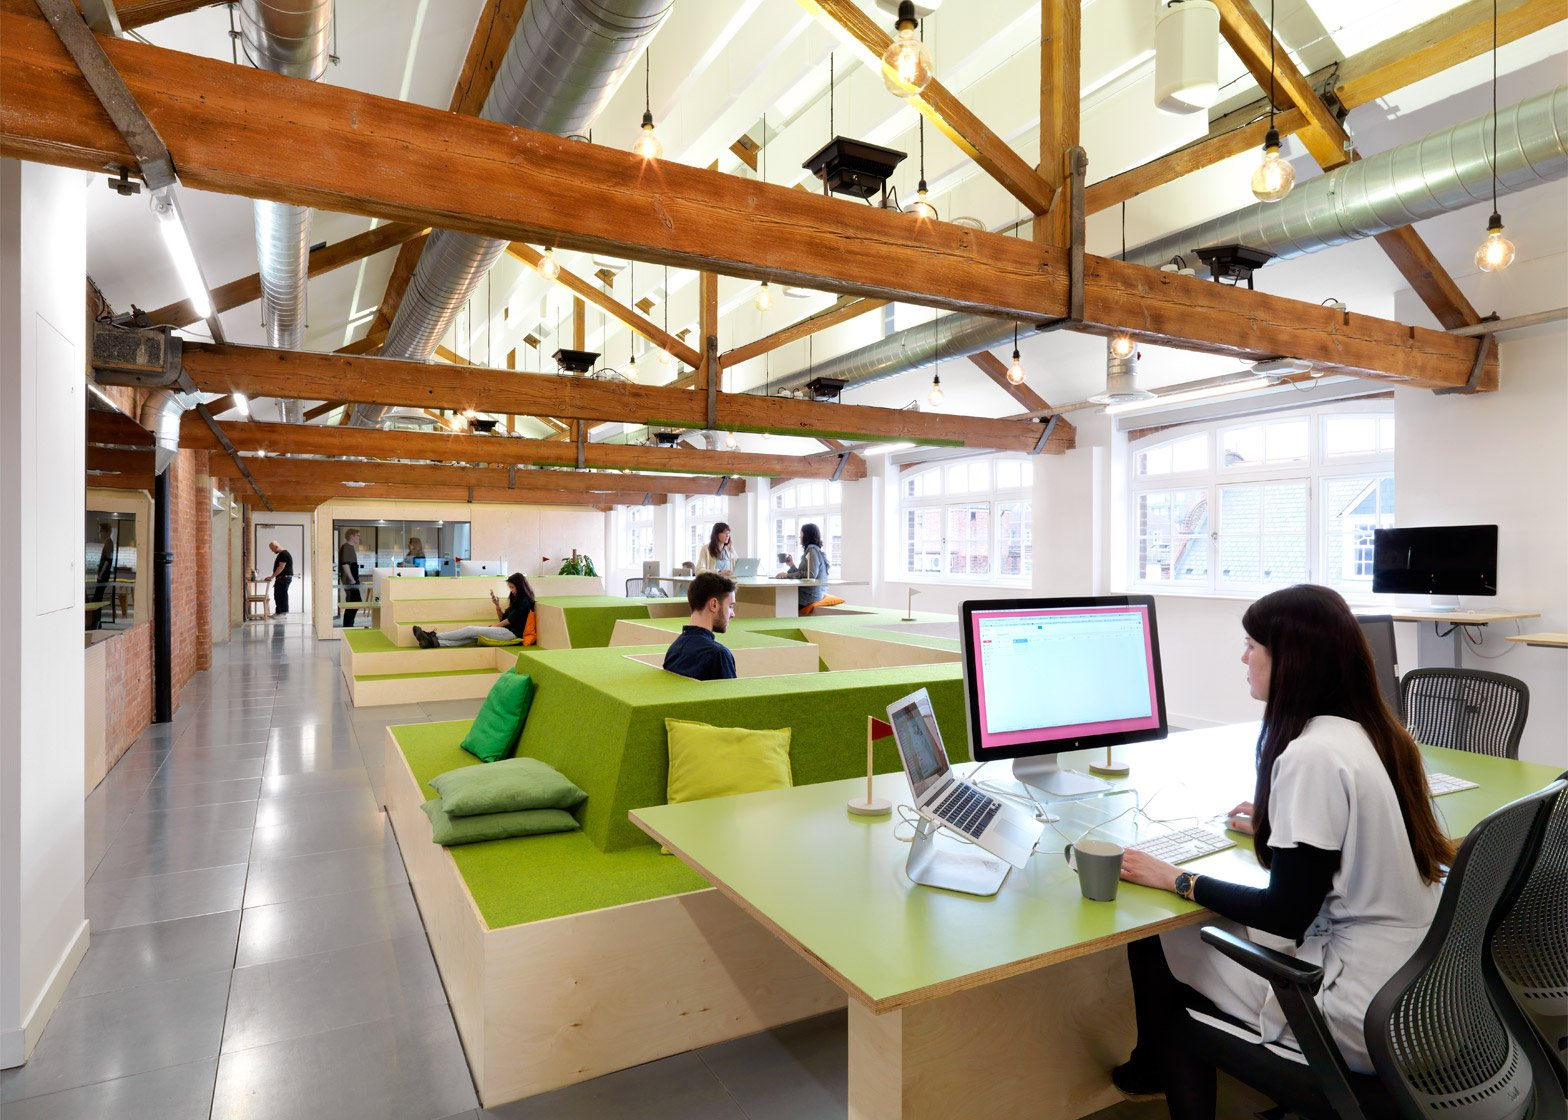 Captivating Open Plan Office Design Is Preventing Workers From Concentrating, Studies  Find